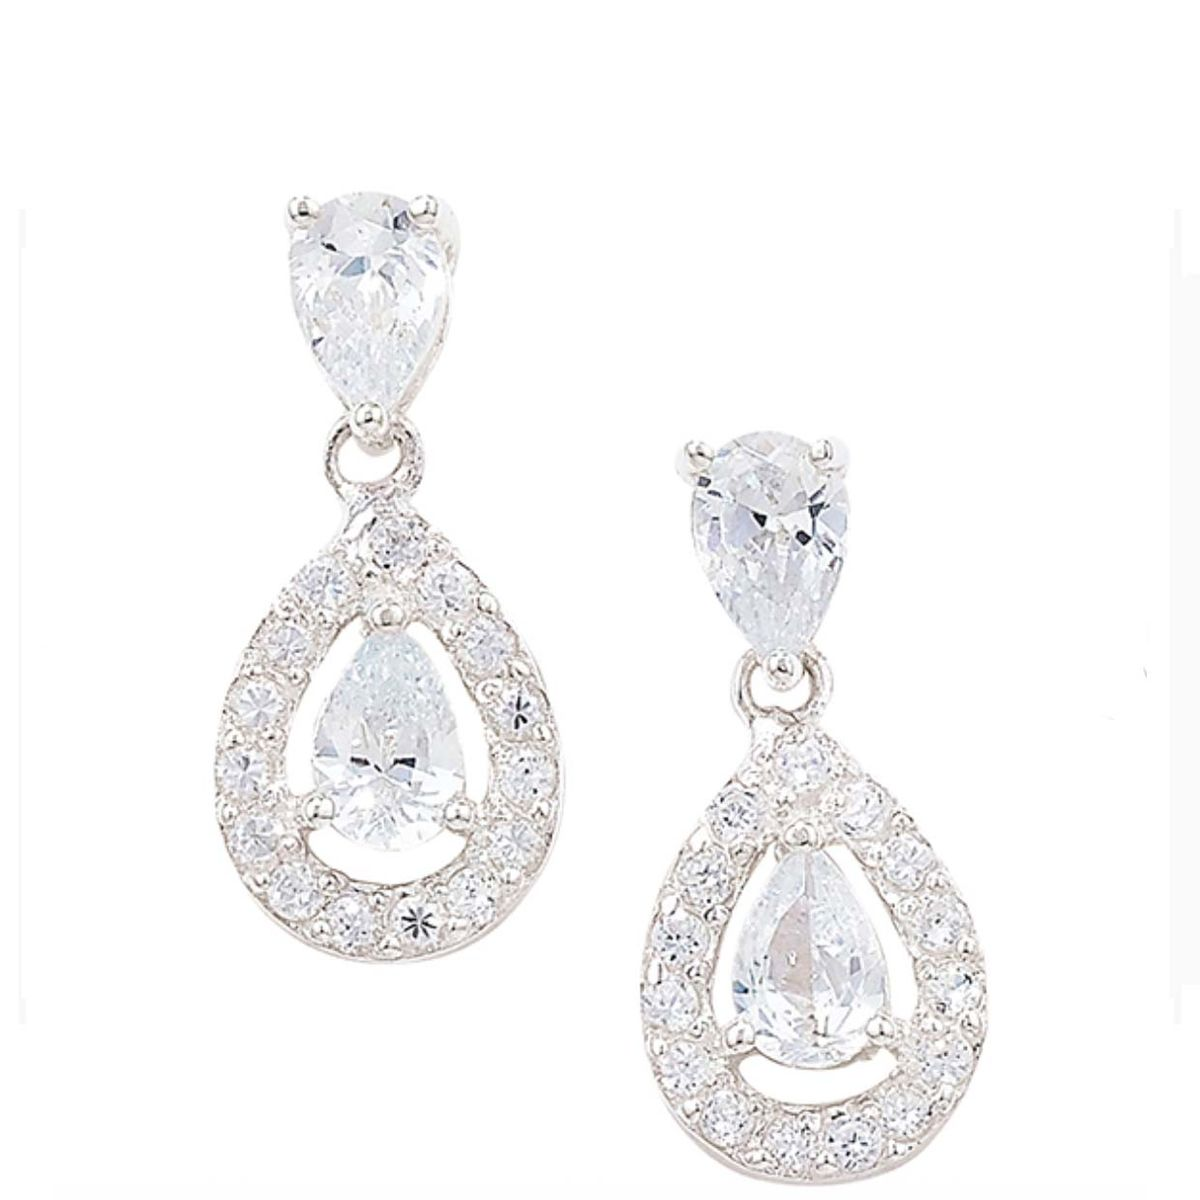 Sterling Silver Crystal Chandelier Earrings - product images  of